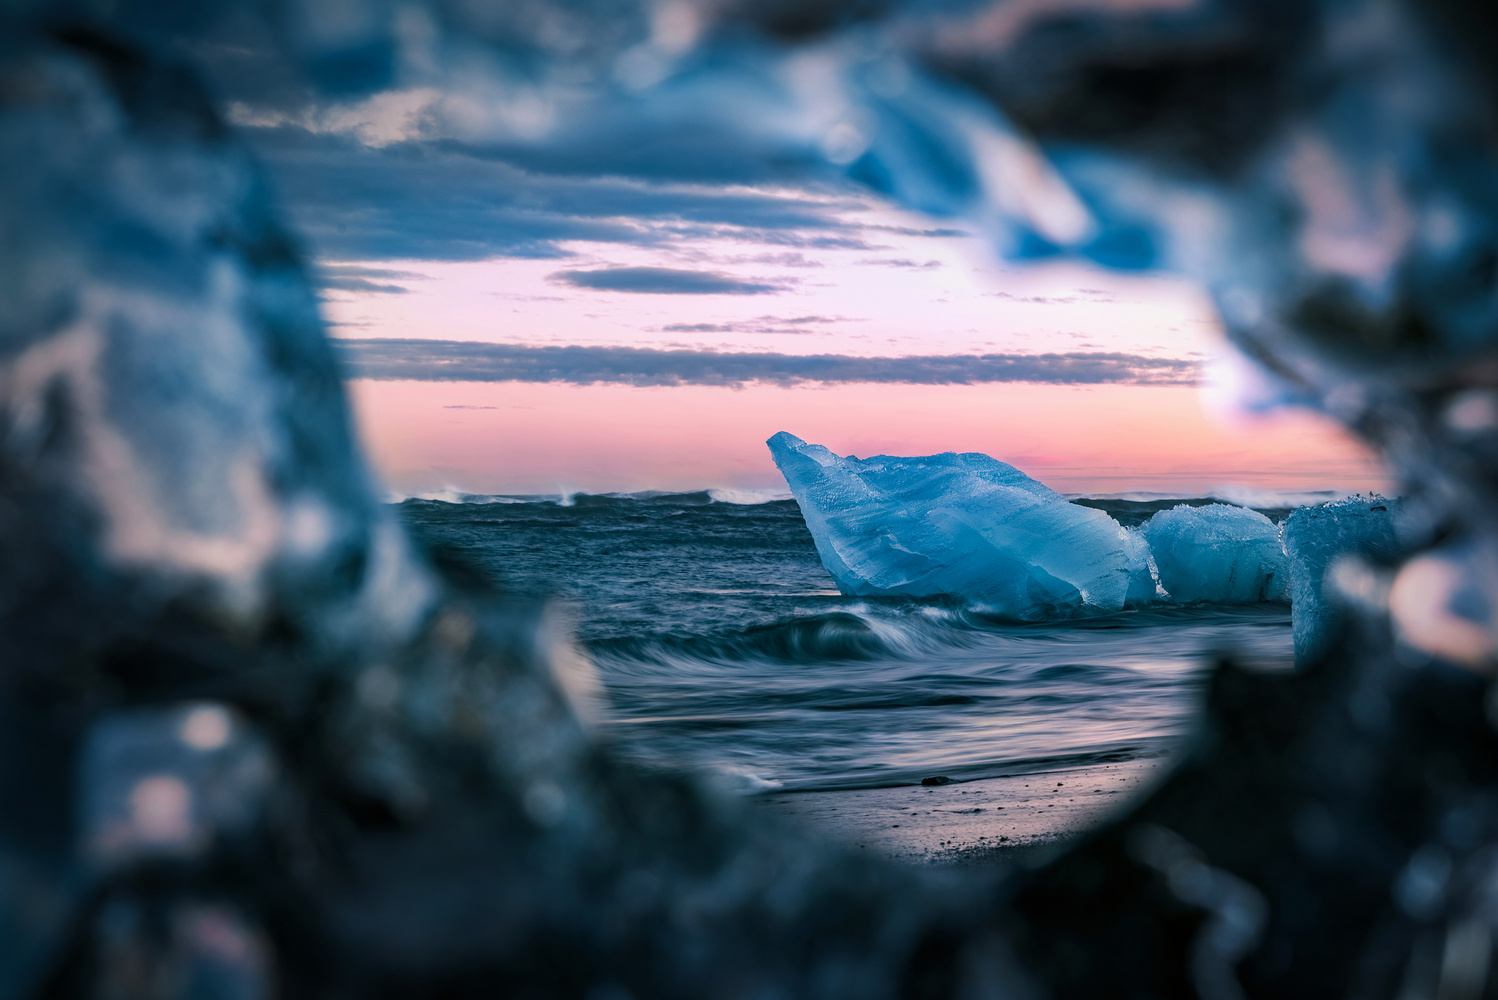 Eye of Ice by Jakob Alecu de Flers